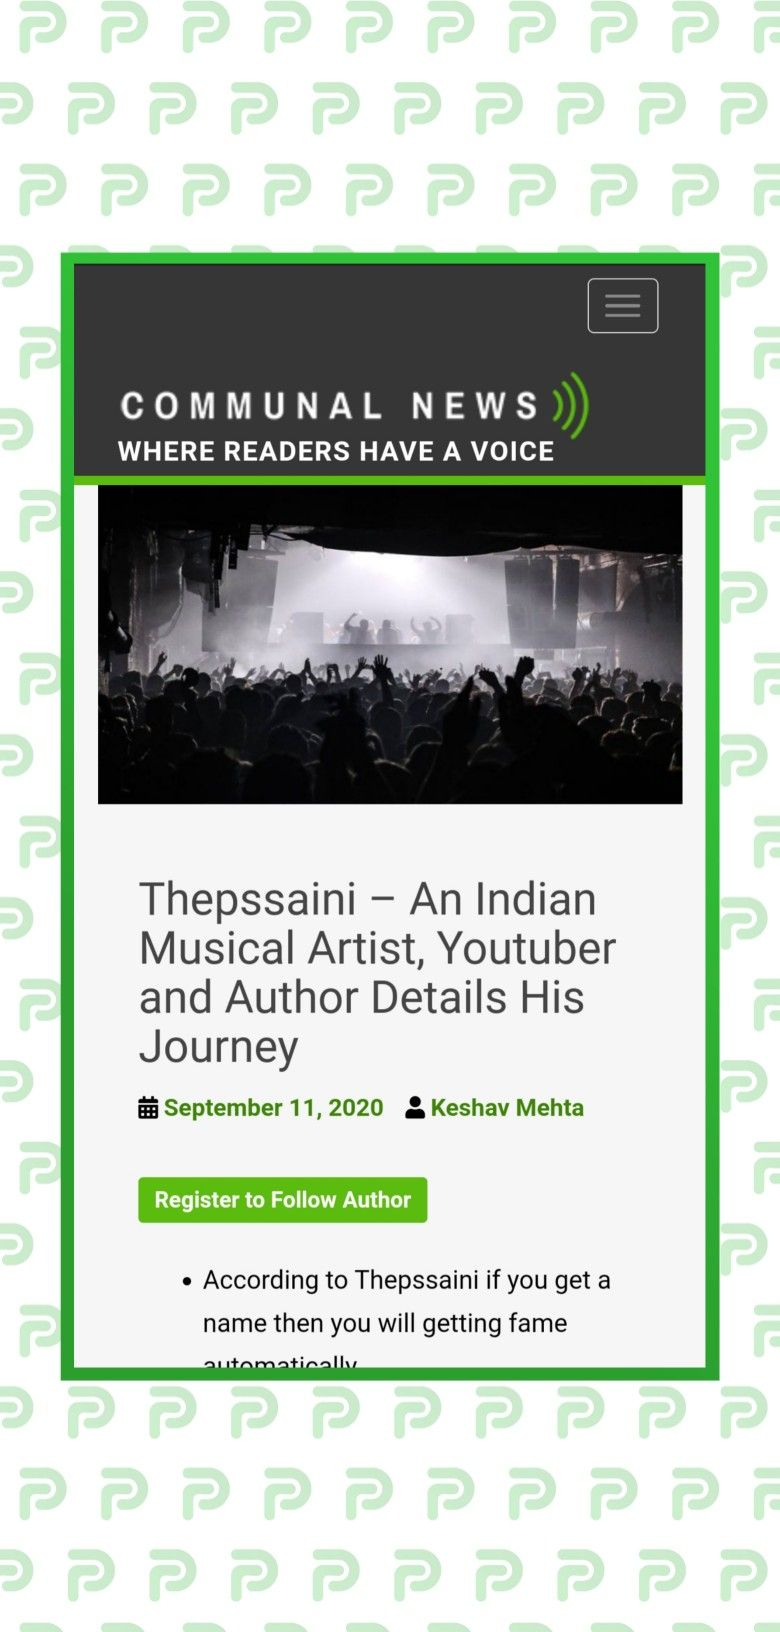 Thepssaini An Indian Musical Artist Youtuber And Author Details His Journey Musicals Soundcloud Music Author